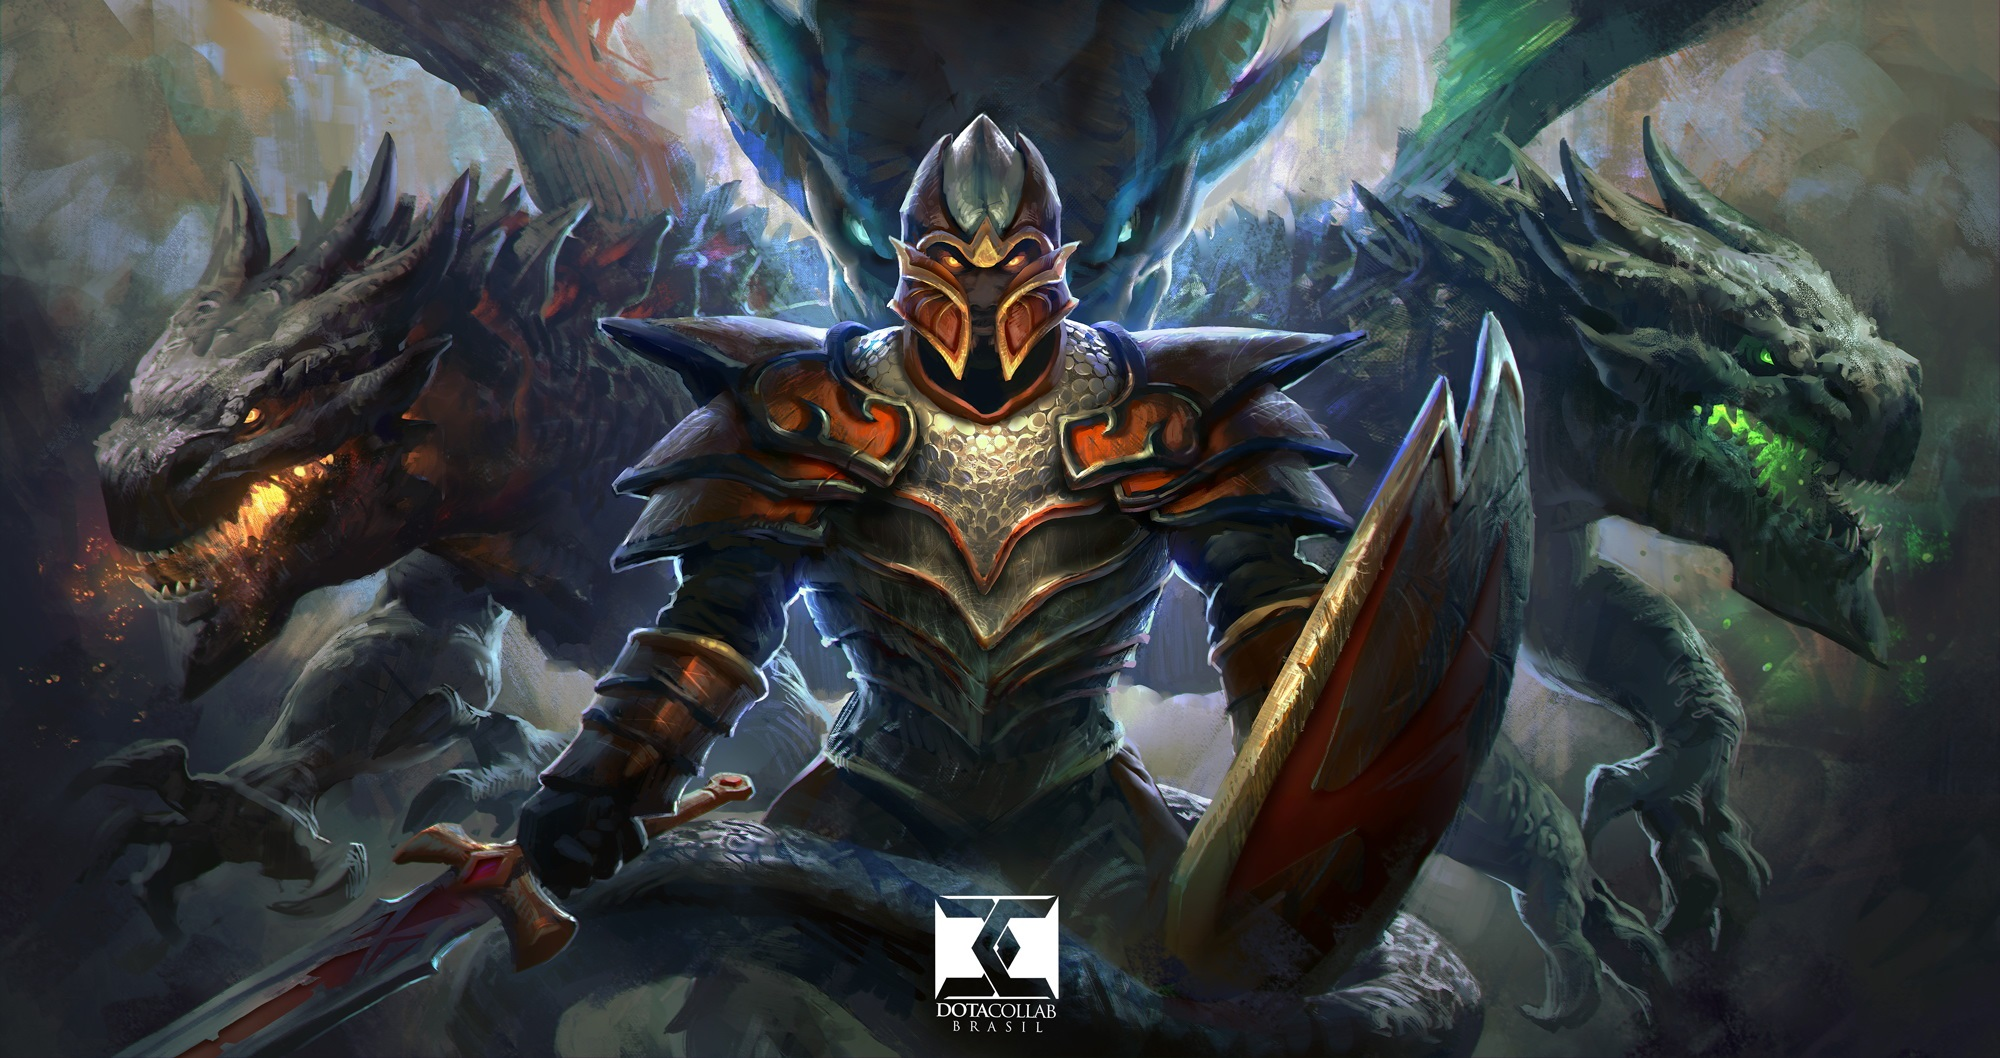 dota2 wallpapers.seoplus.com.ua 53